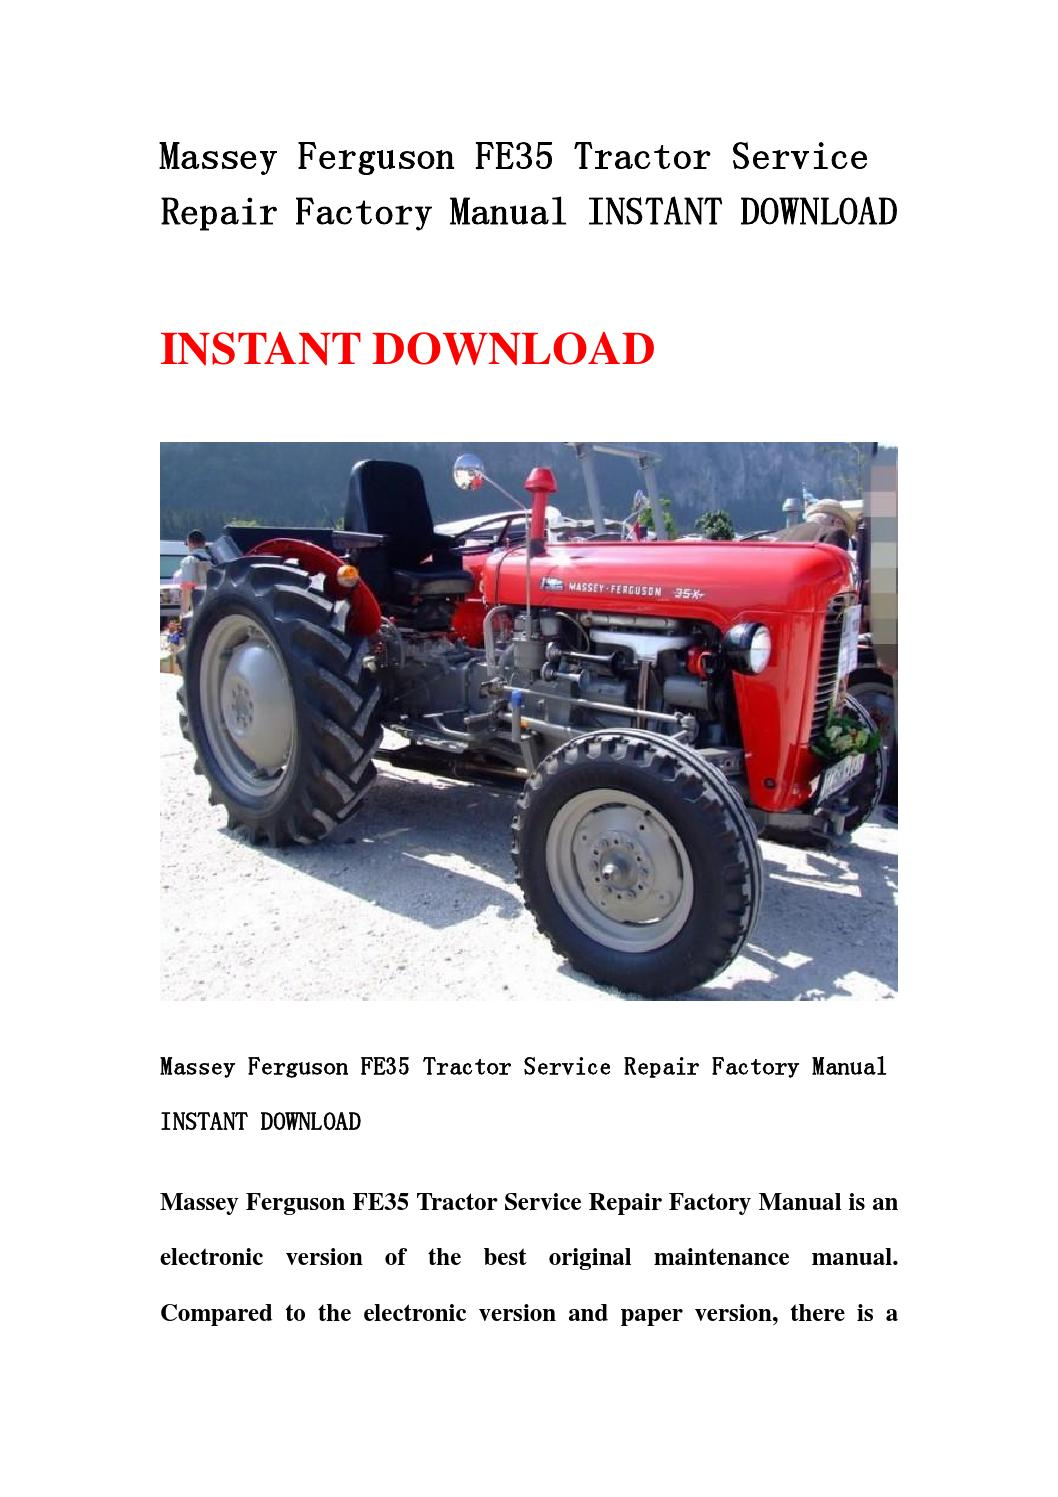 Massey Ferguson Tractor Troubleshooting : Massey ferguson fe tractor service repair factory manual